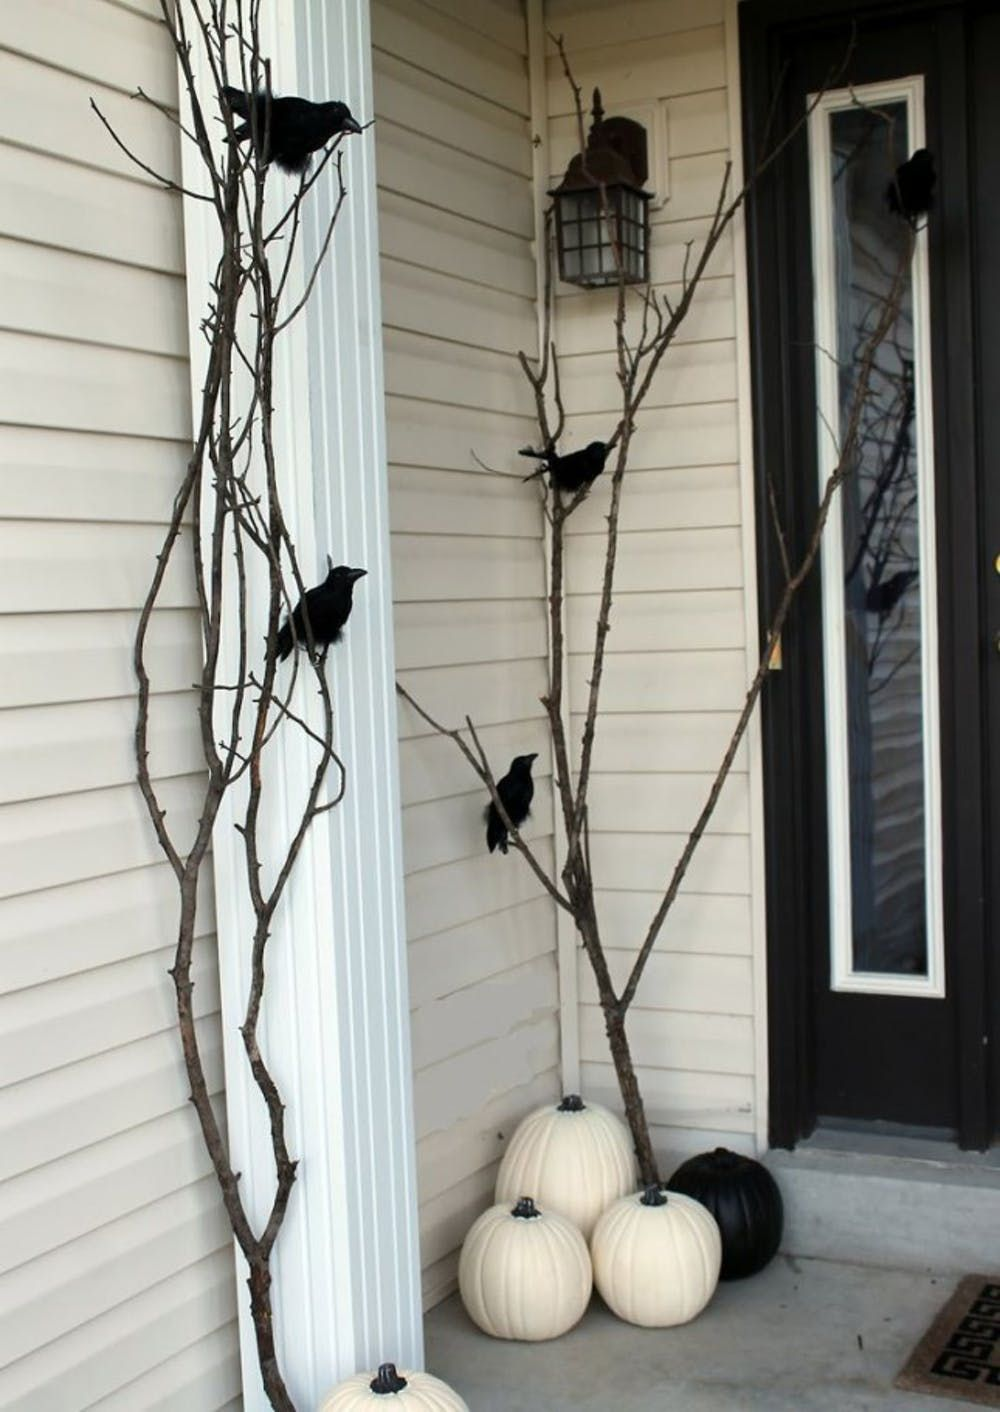 16 DIY Ways to Scare Trick-or-Treaters on October 31st